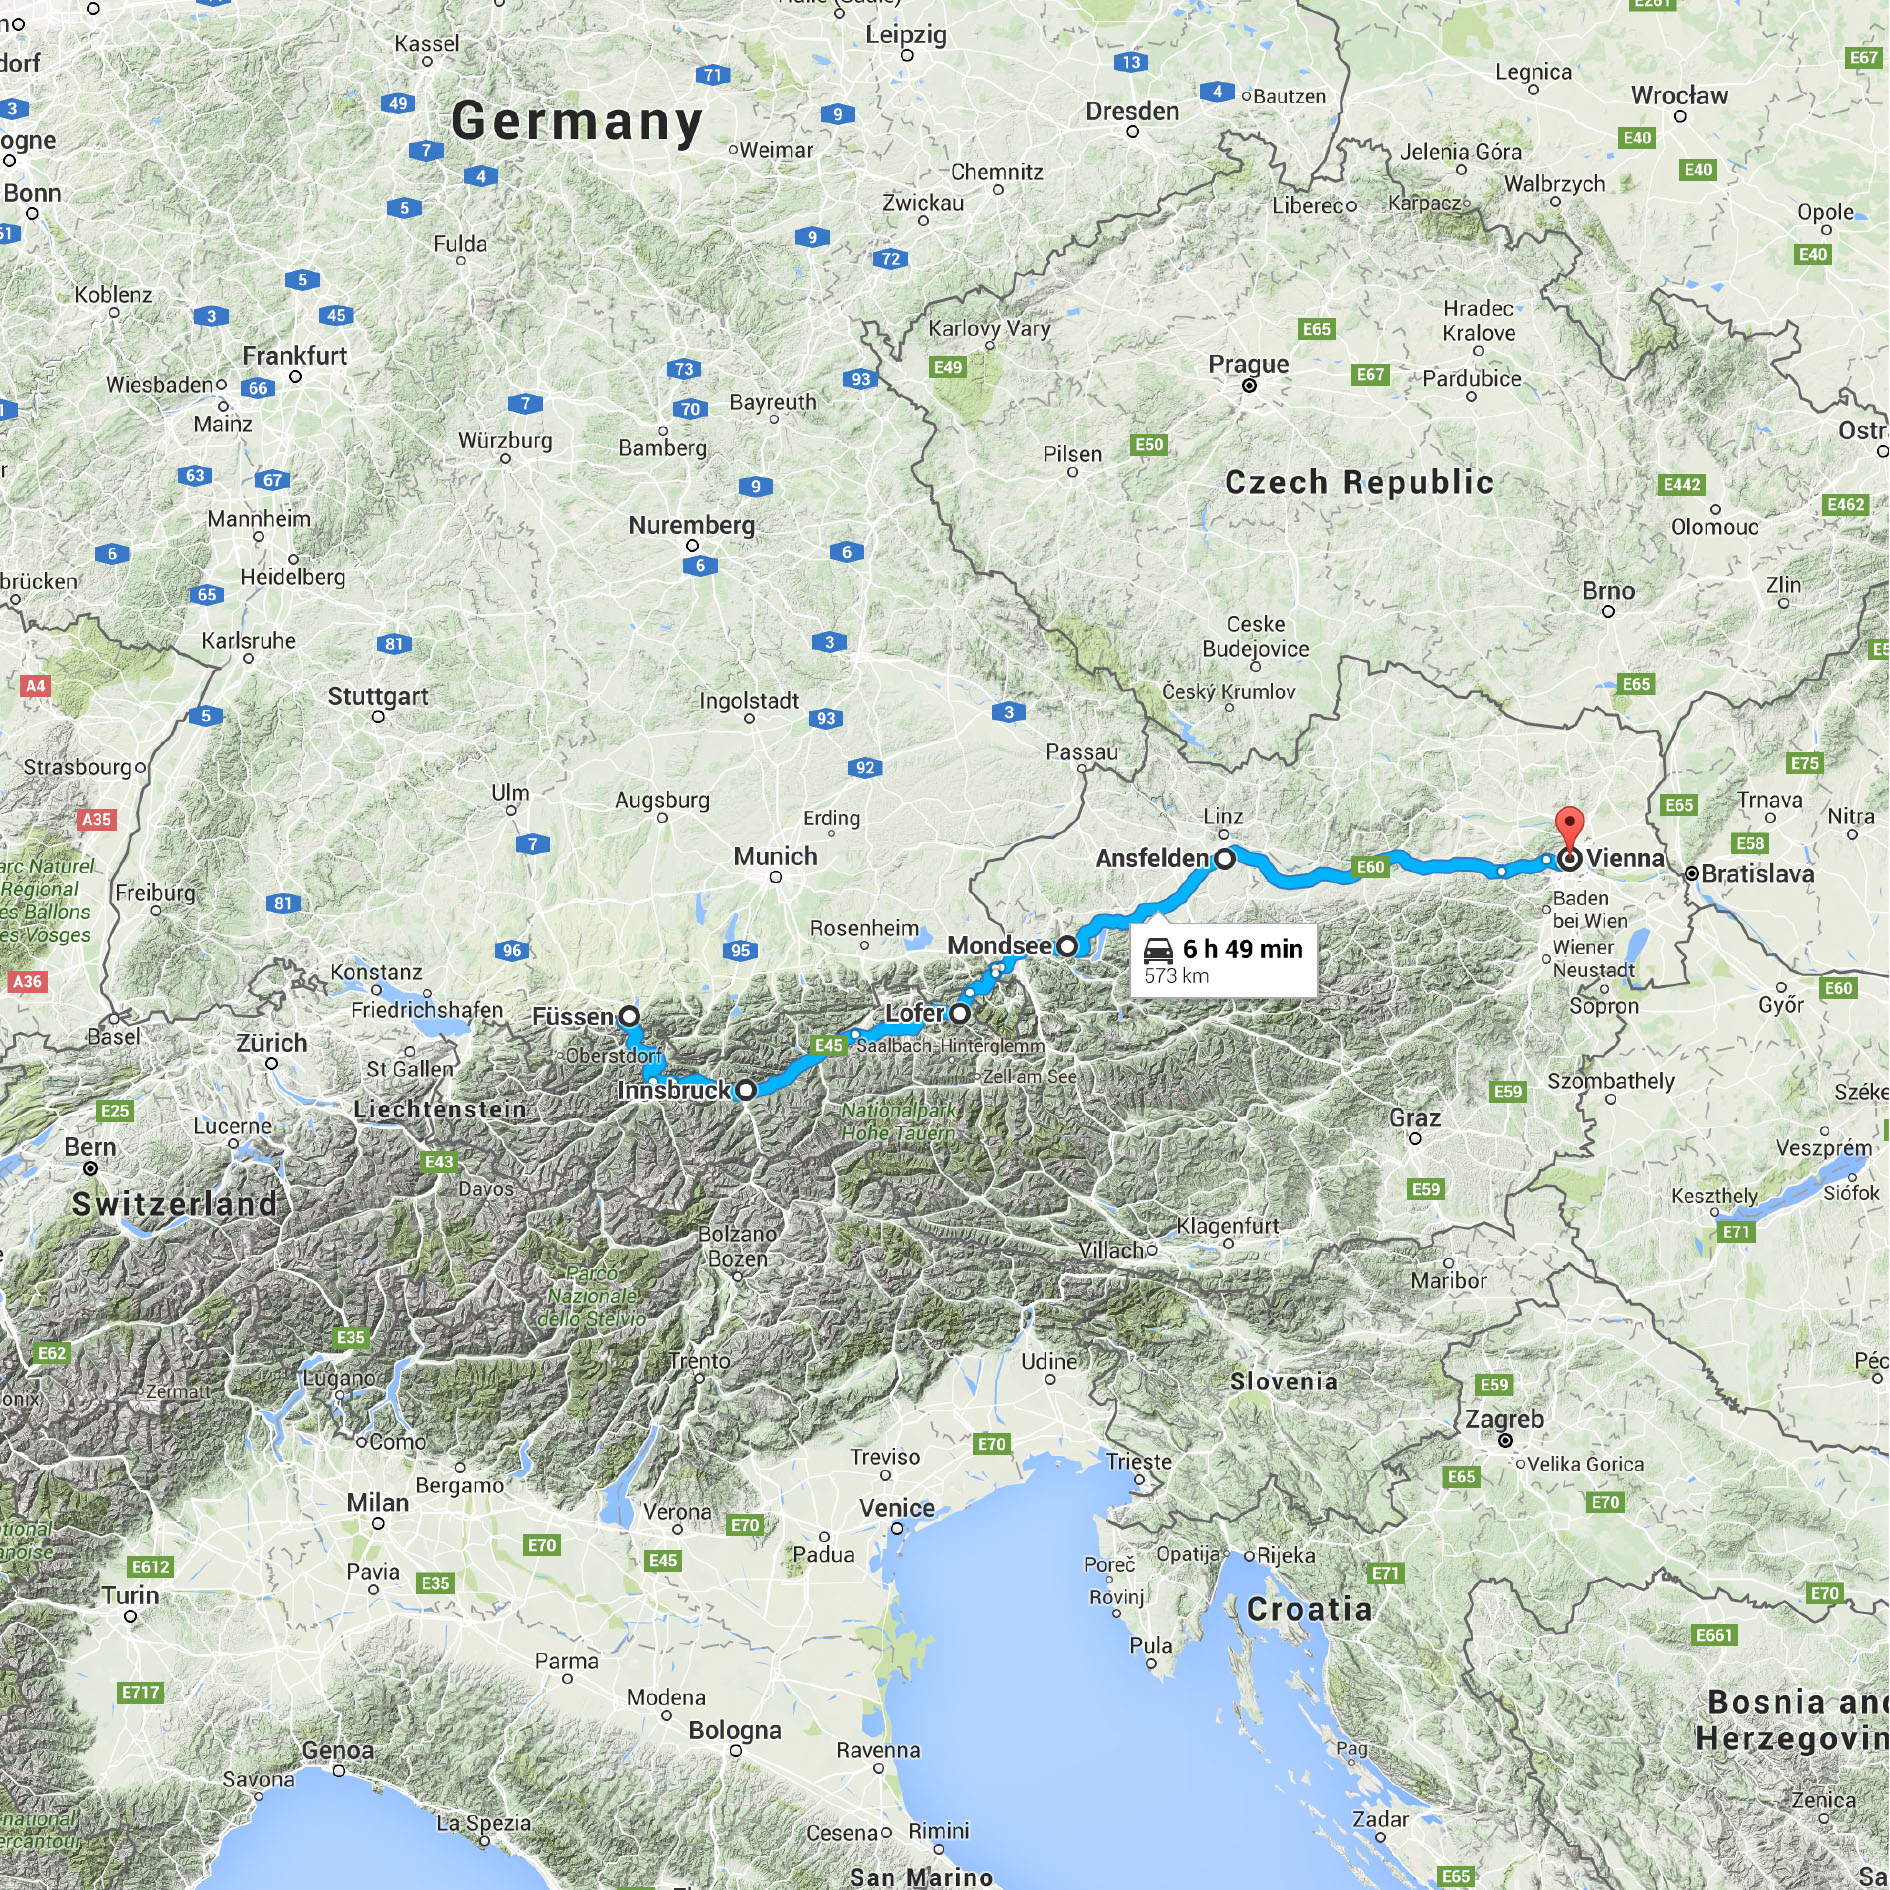 Map Of Germany Google.Fussen Germany To Vienna Austria Google Maps Trailing Horizons